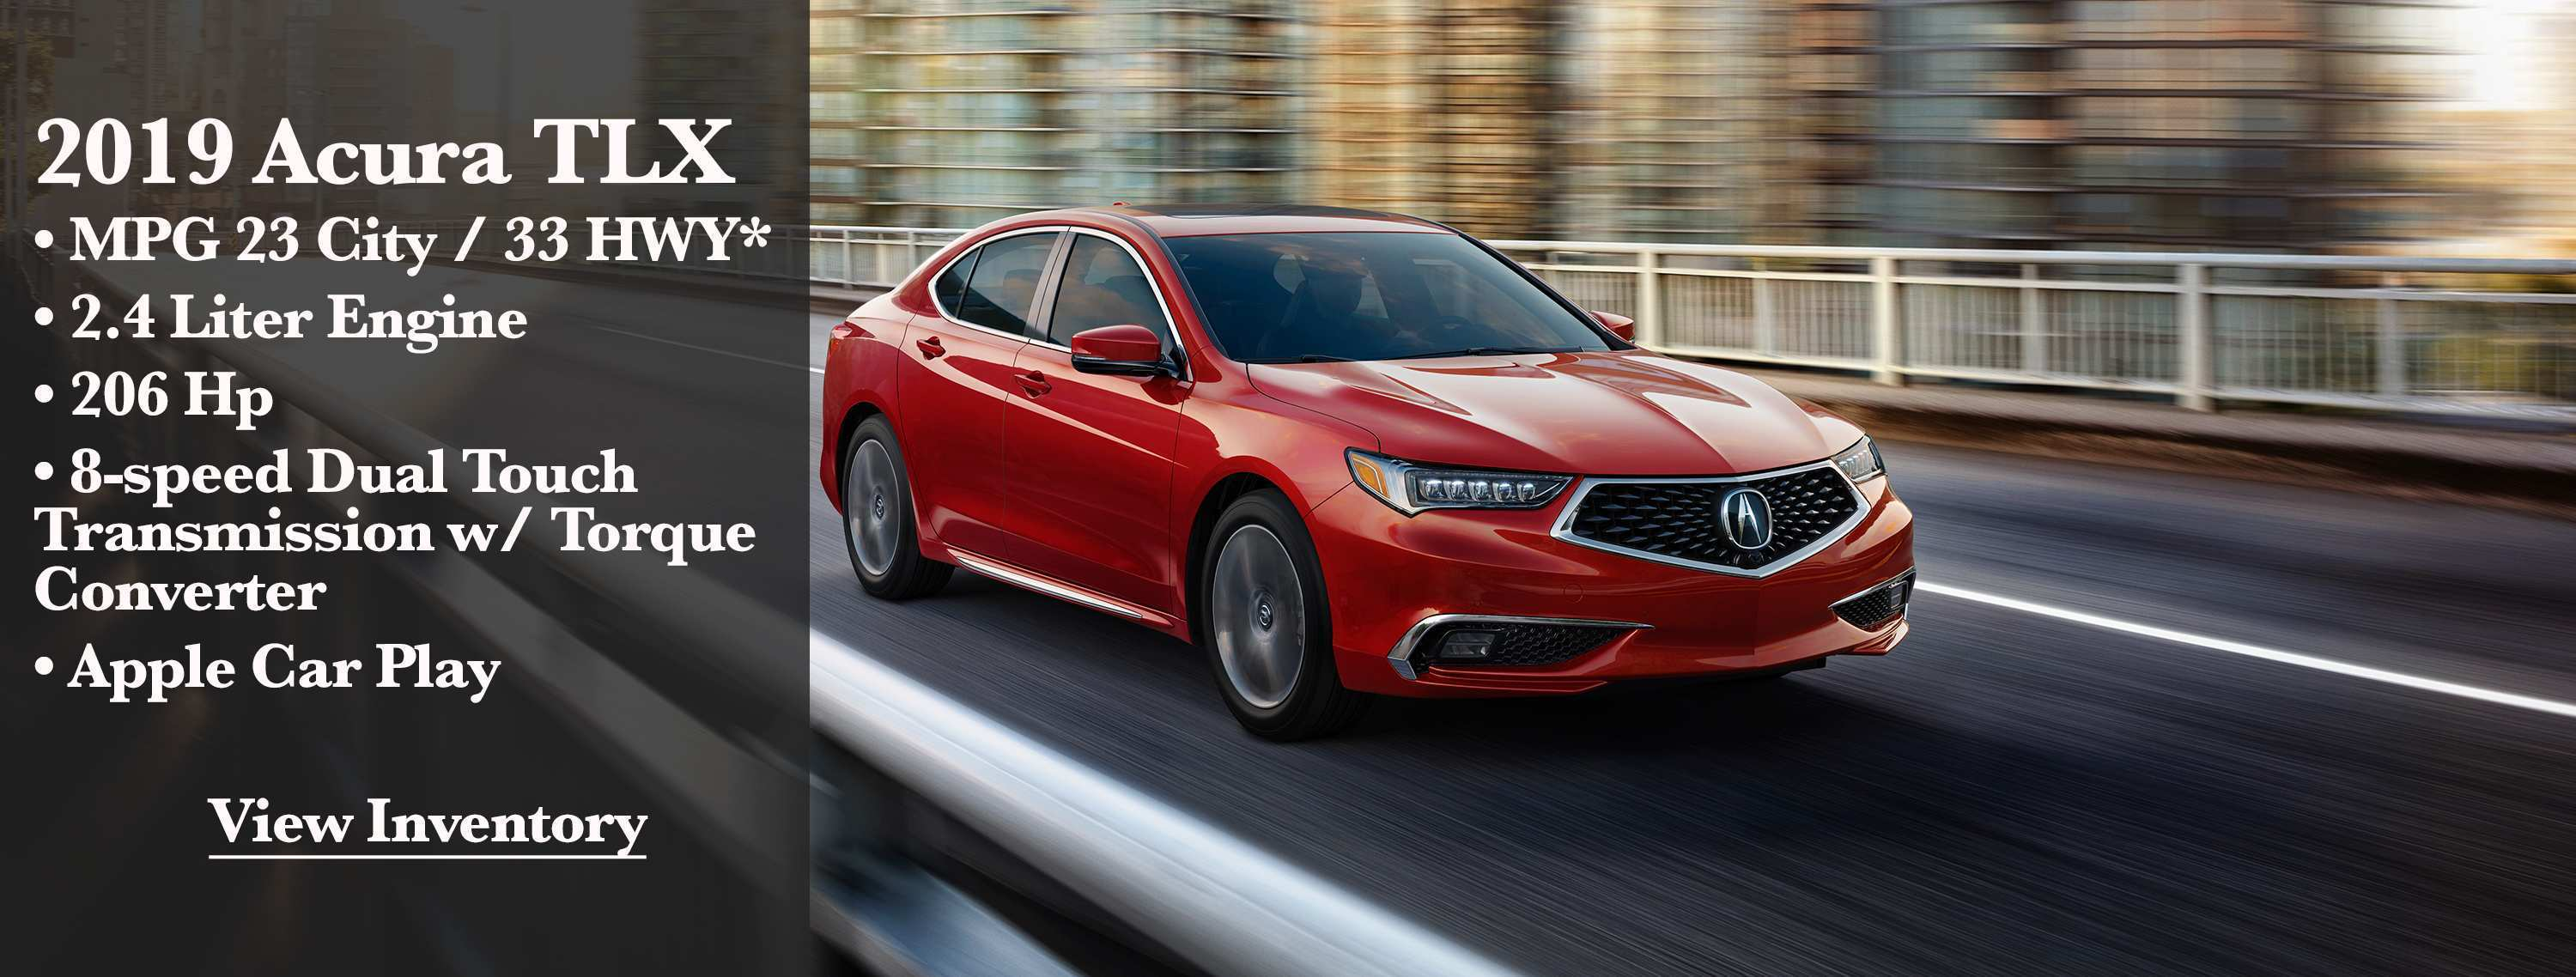 41 All New Best Acura 2019 Tlx Brochure Redesign New Concept by Best Acura 2019 Tlx Brochure Redesign